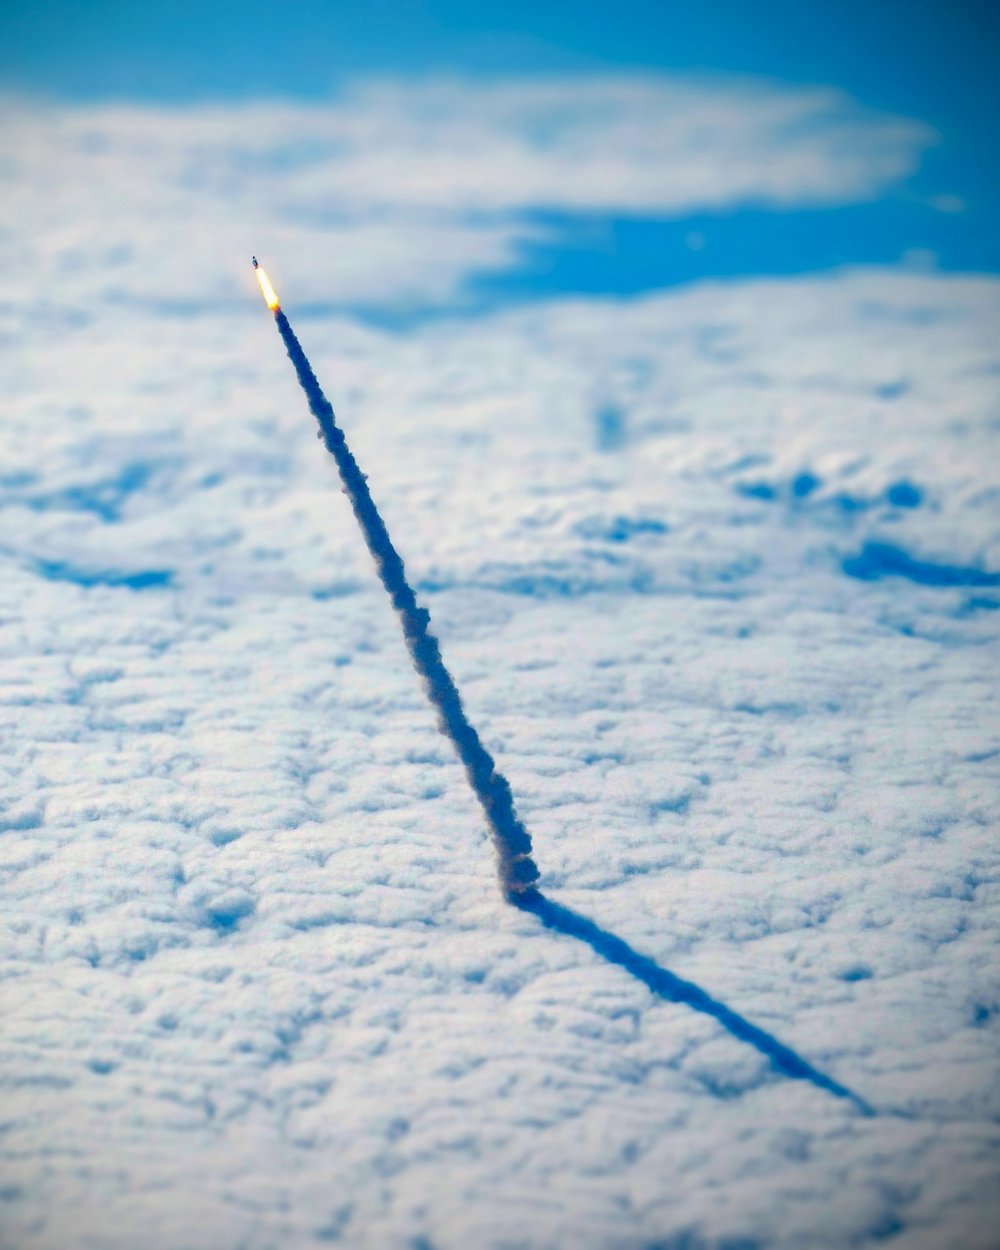 For your daily dose of perspective, here's a photograph of the space shuttle Endeavour, lifting through the clouds during its final launch in May 2011. The photograph was captured from a nearby NASA shuttle training aircraft.  Source imagery: NASA - National Aeronautics and Space Administration